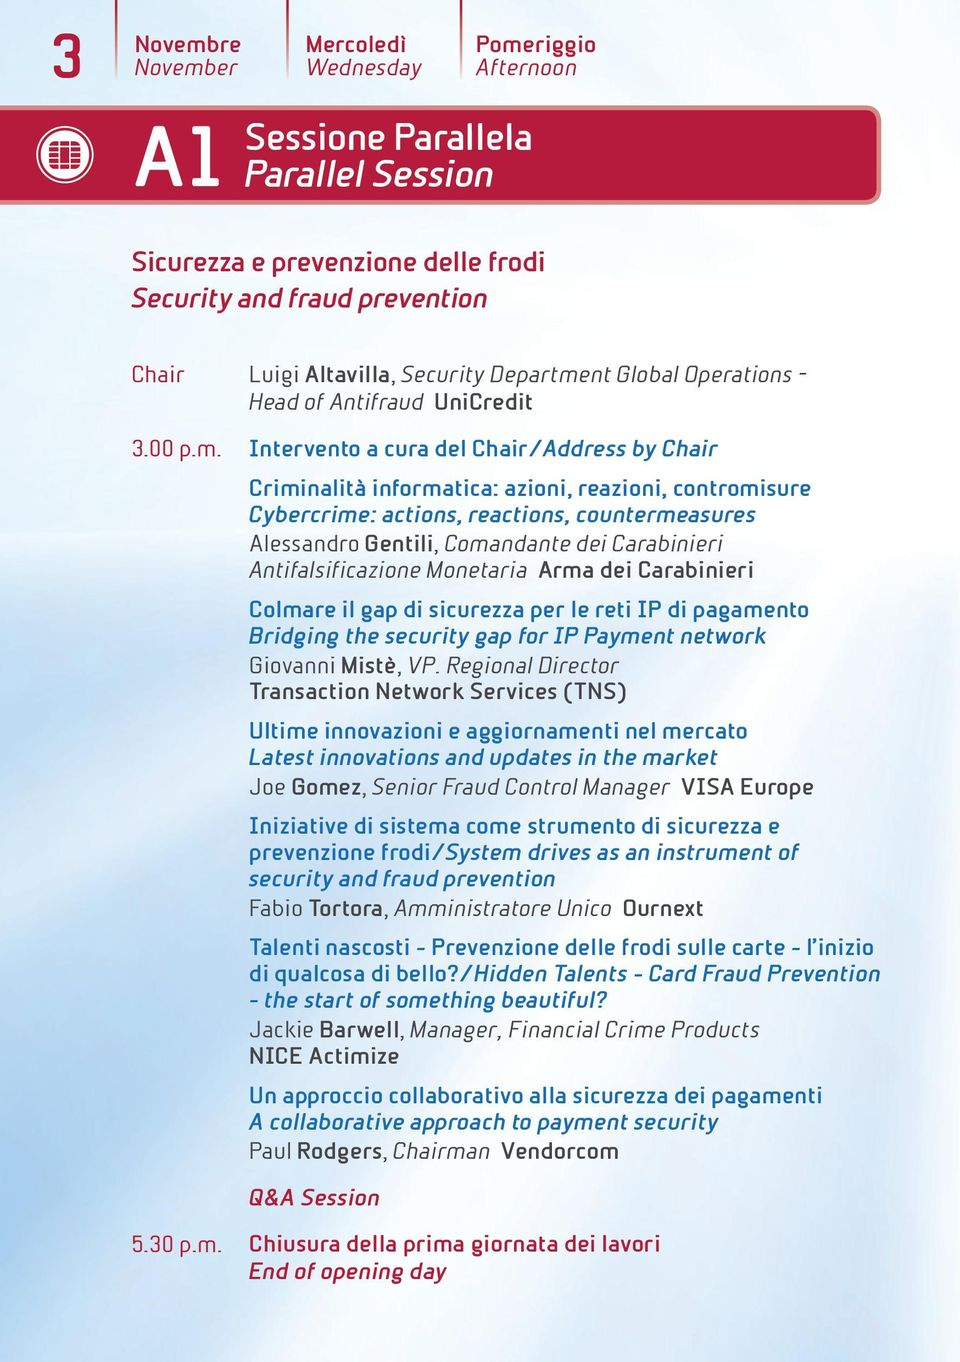 riggio Afternoon Sicurezza e prevenzione delle frodi Security and fraud prevention 3.00 p.m.